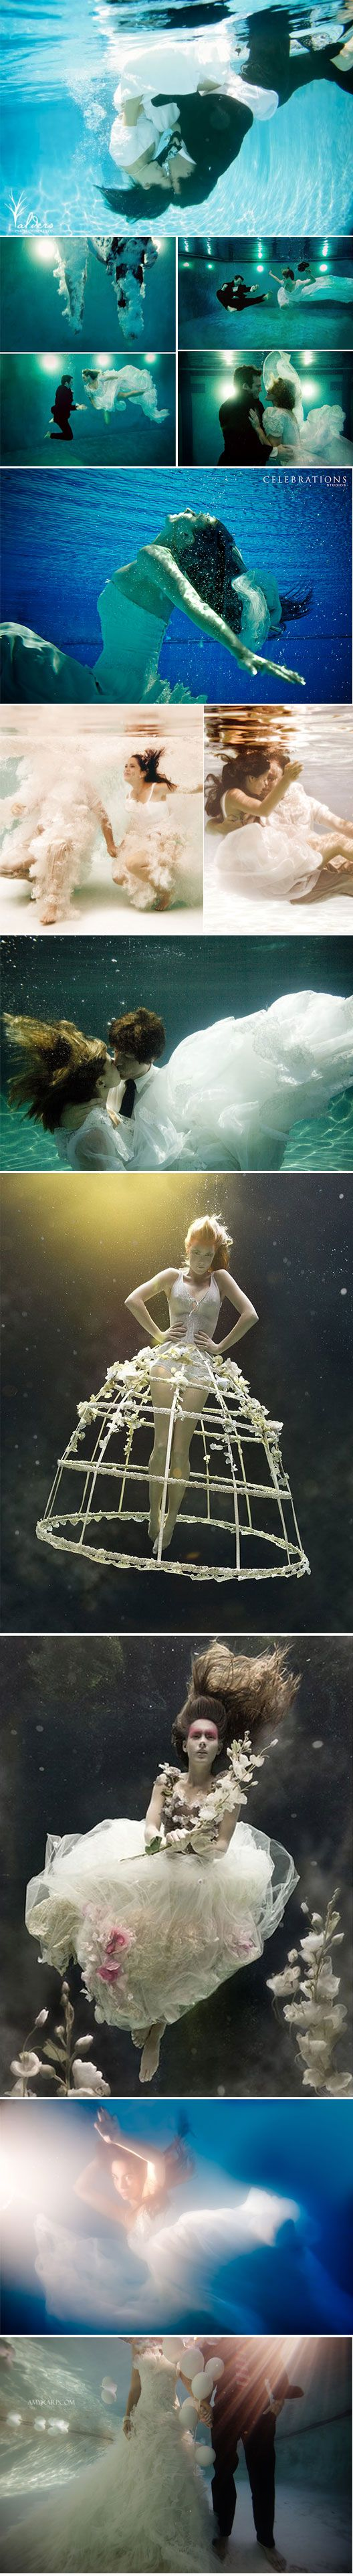 Underwater Wedding pictures!